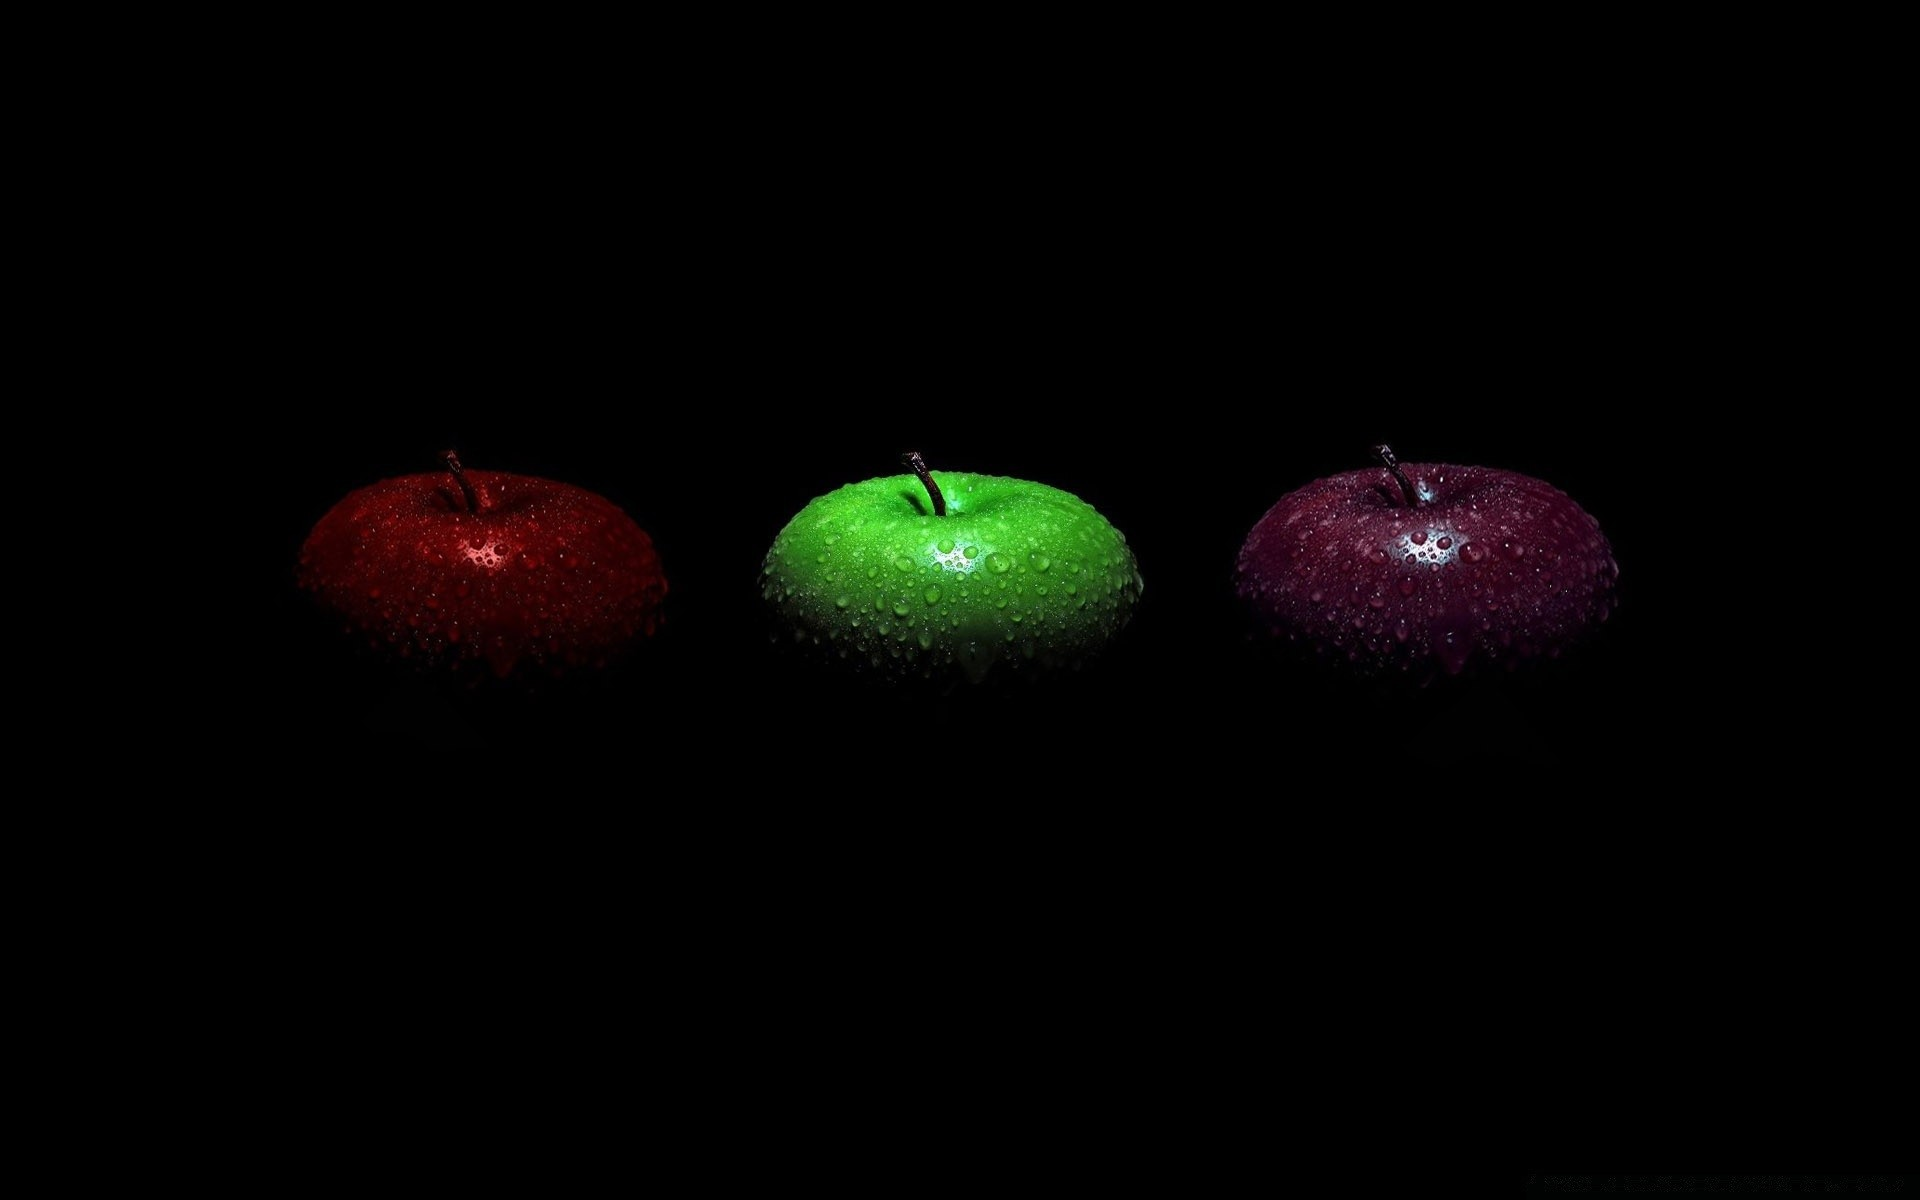 red apple green apple and purple apple. desktop wallpapers for free.